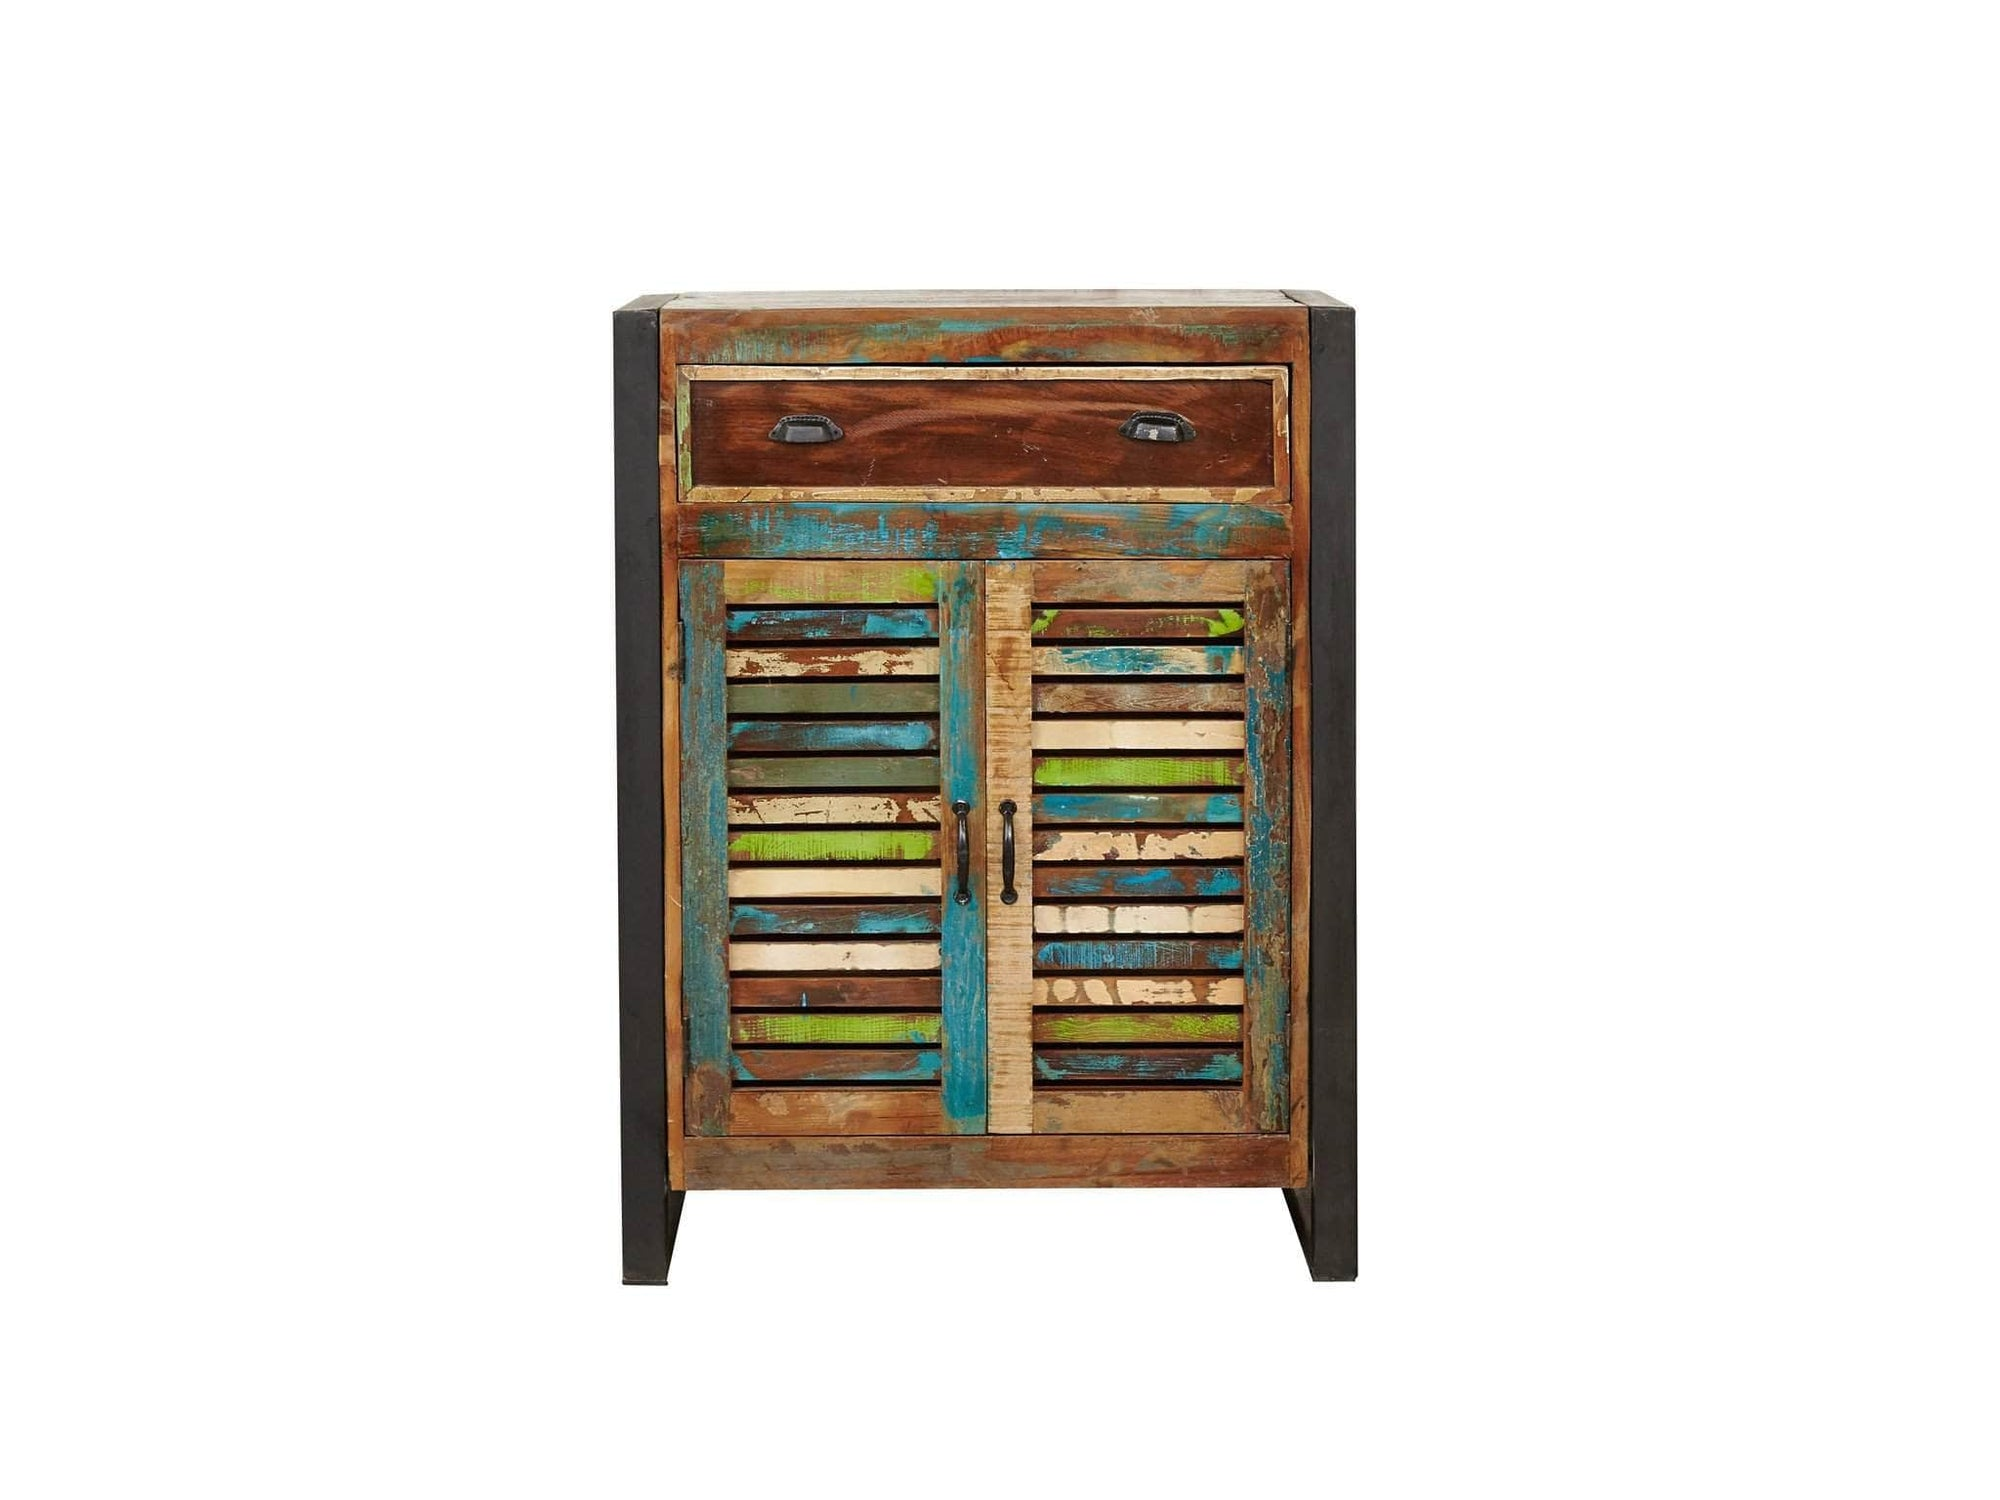 Reclaimed wood shoe storage cabinet with large top drawer and double doors